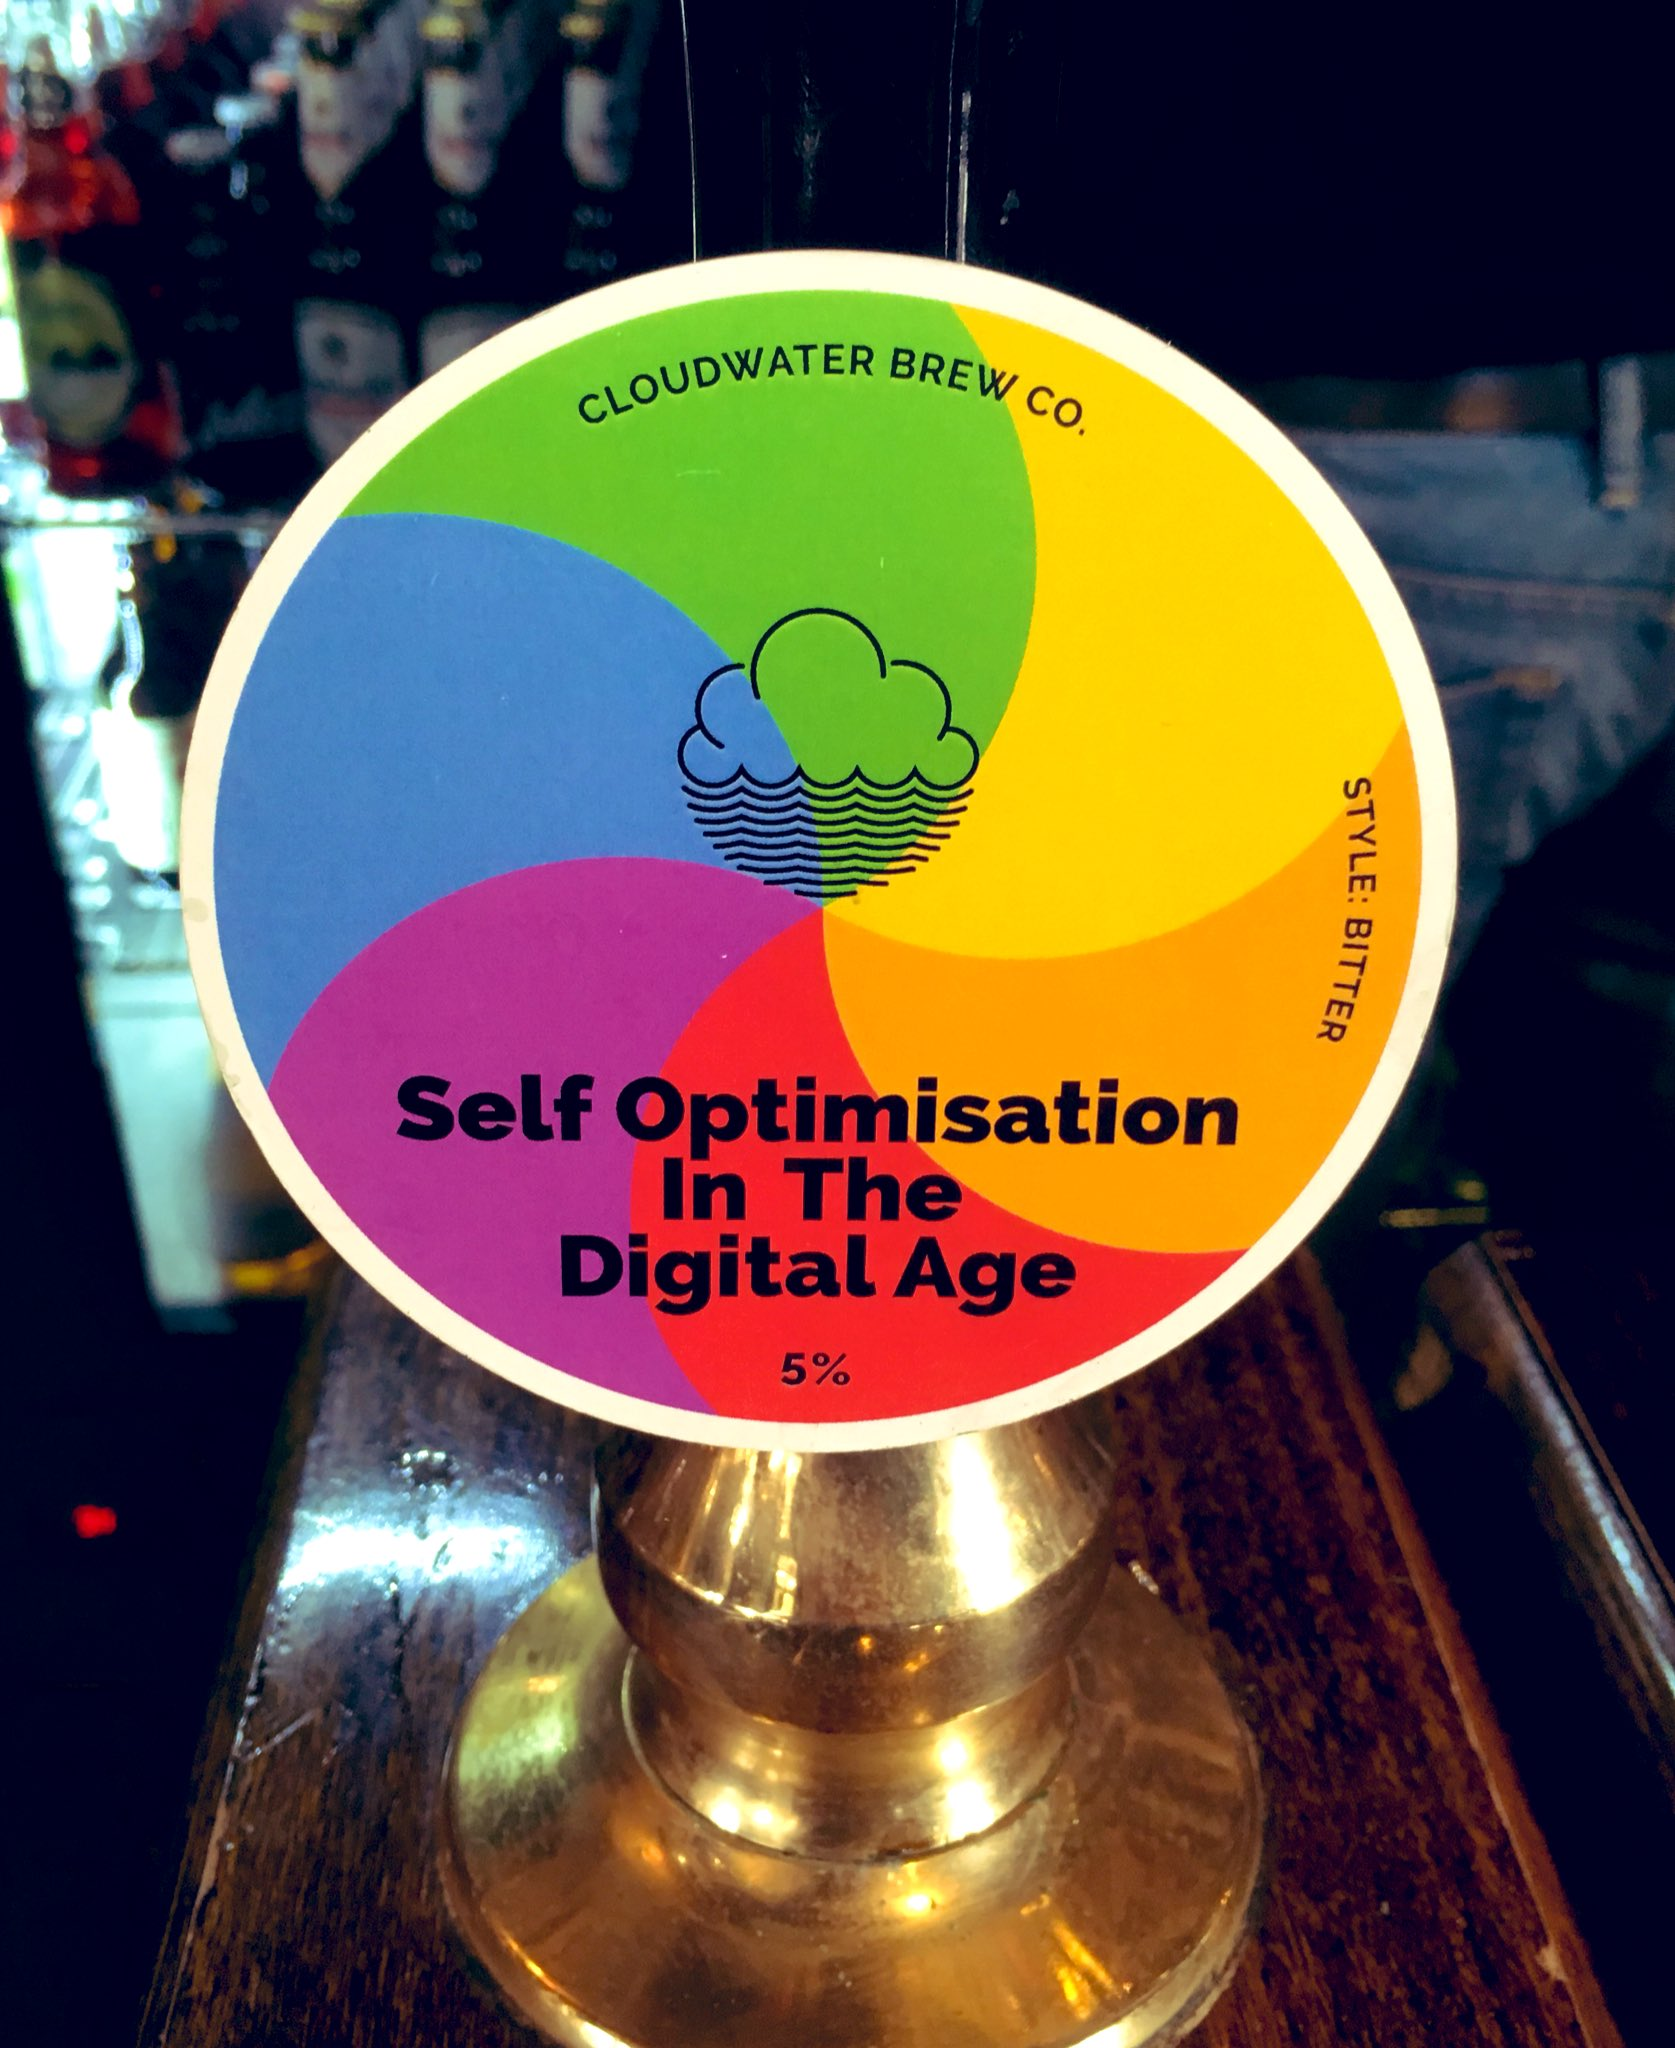 209: Self Optimisation in the Digital Age